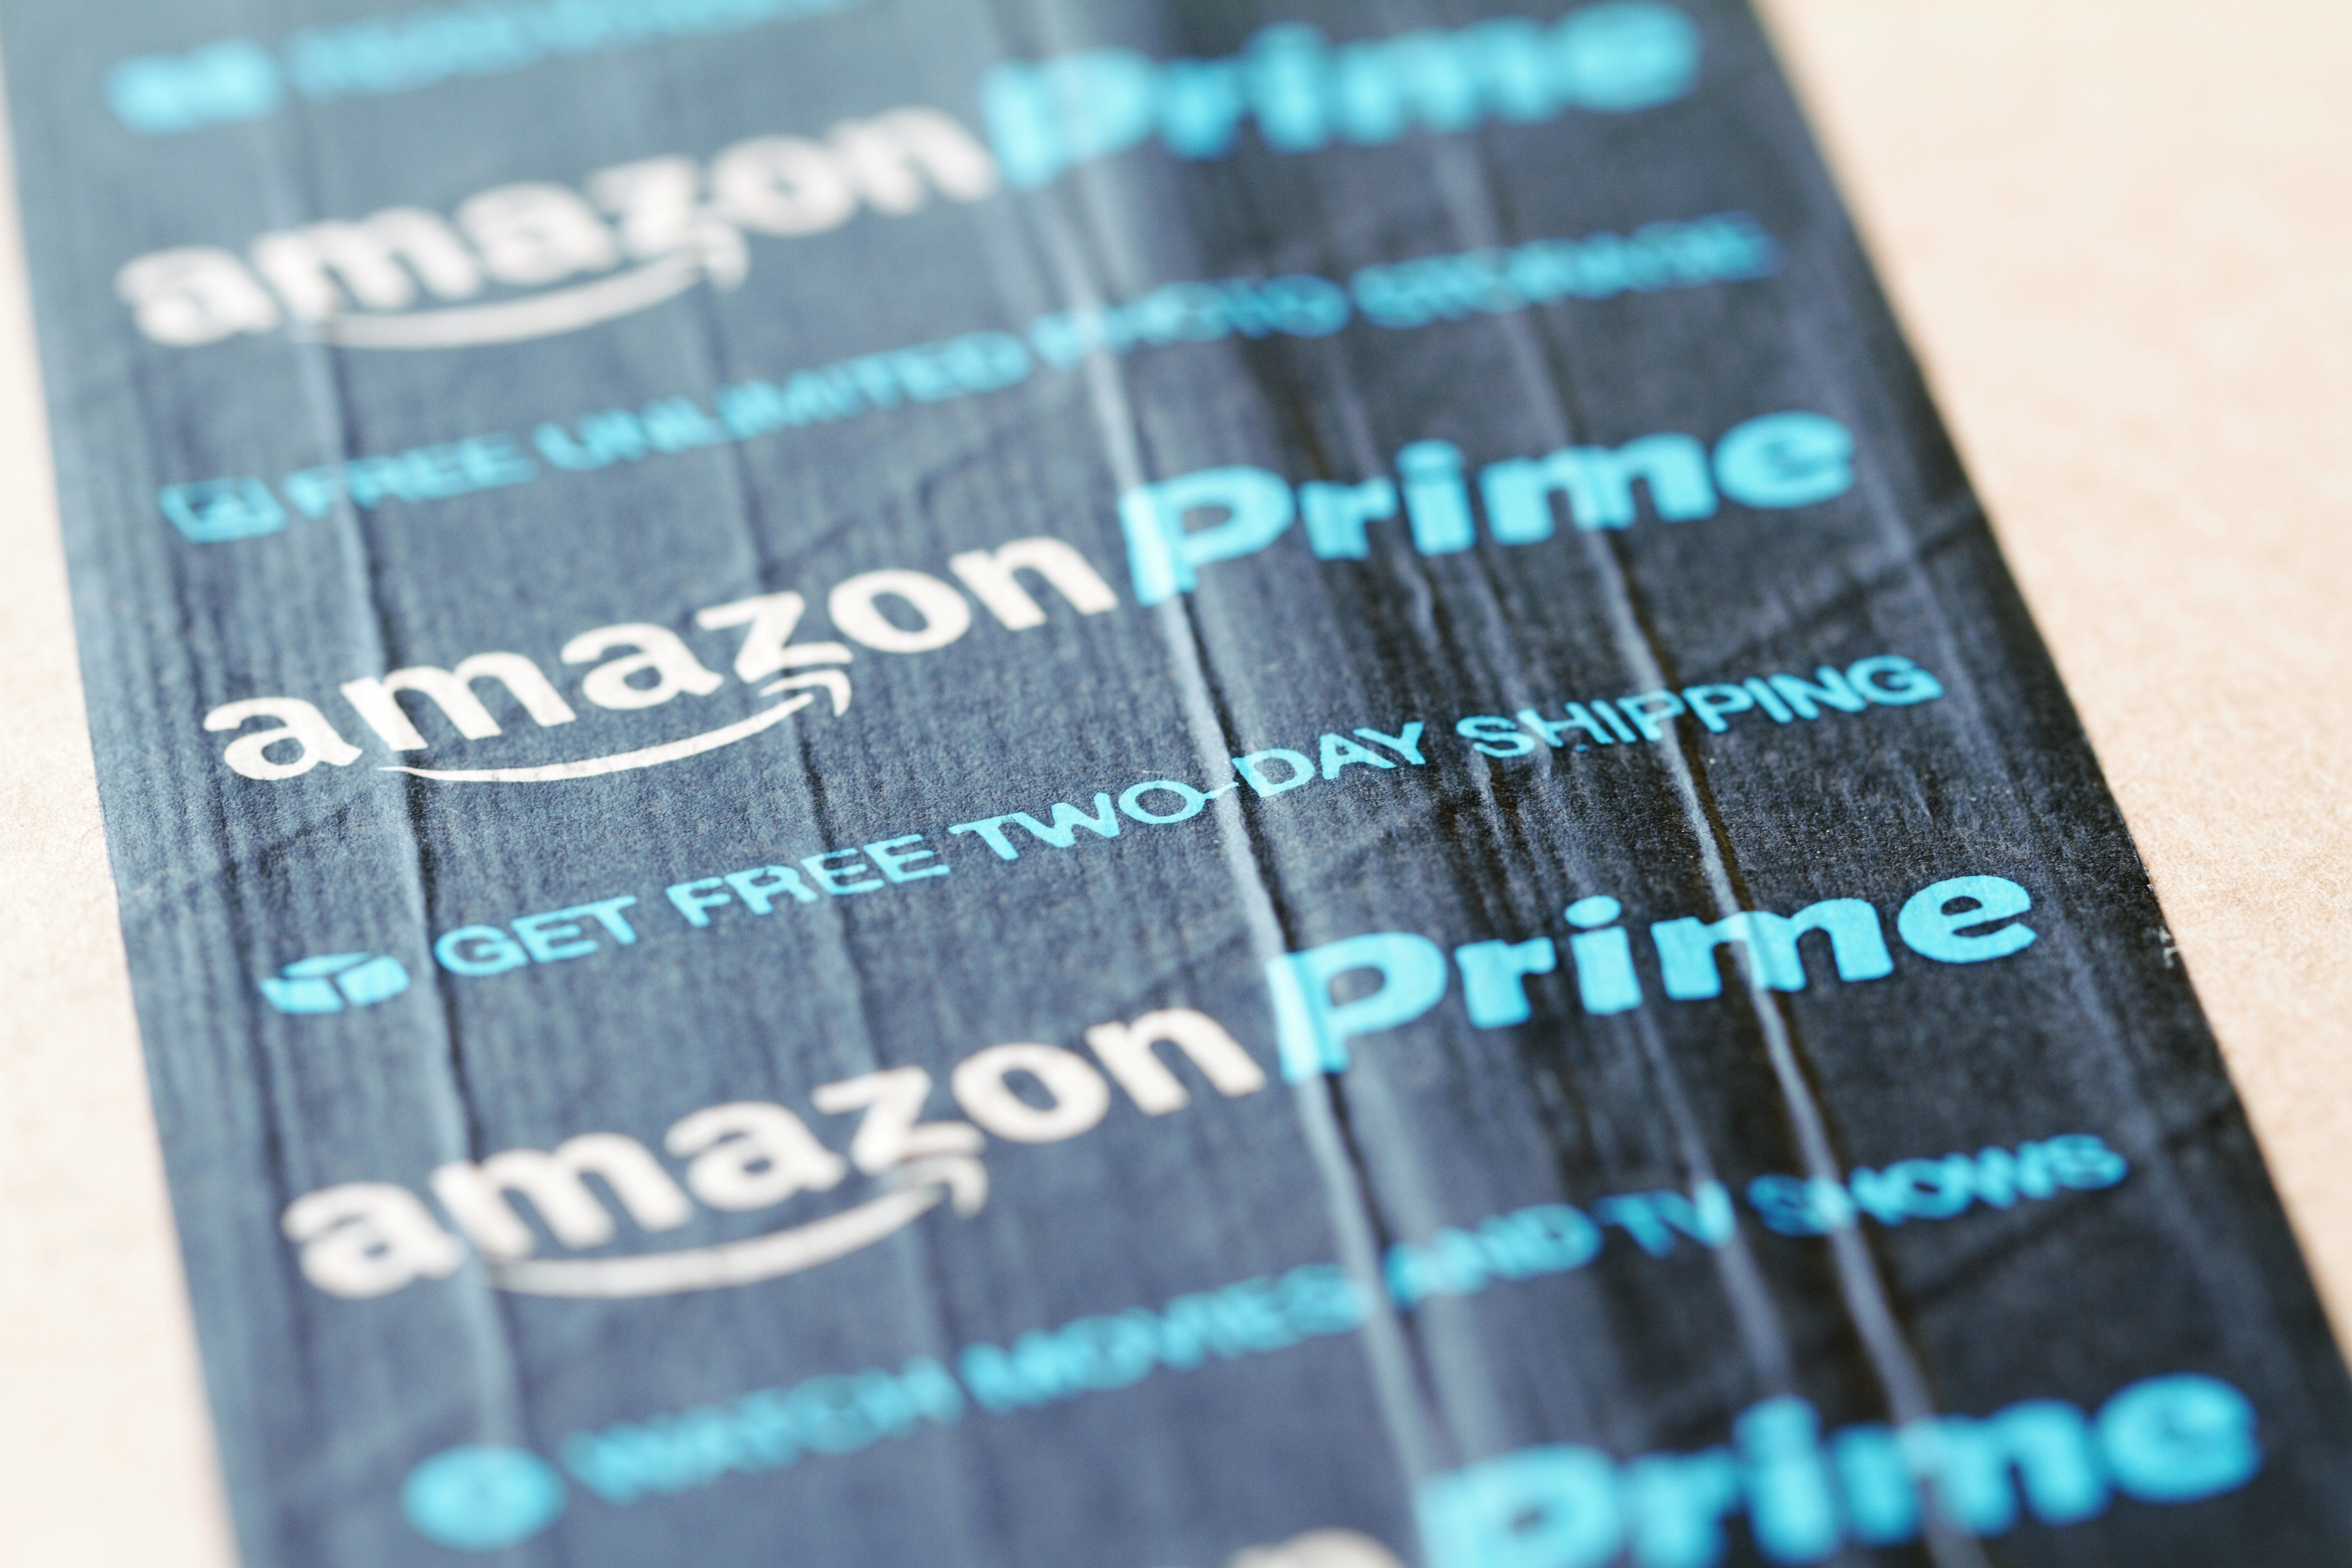 The benefits of Amazon Prime have been valued at $784 a year.